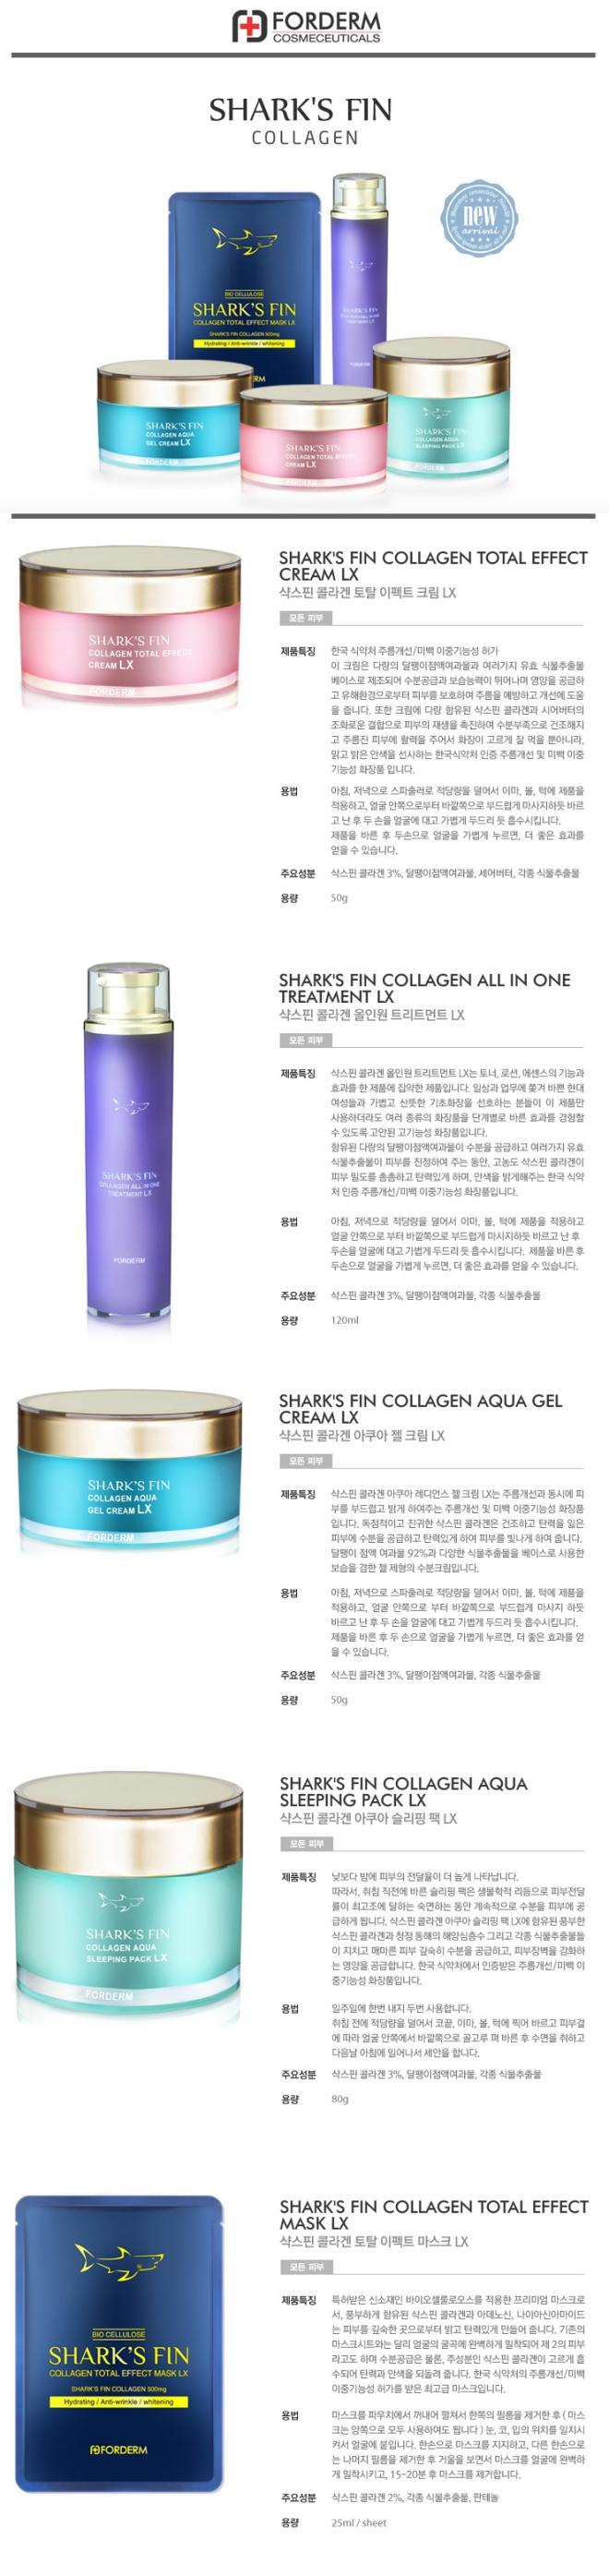 Credit: Forderm Cosmeceuticals Korea website